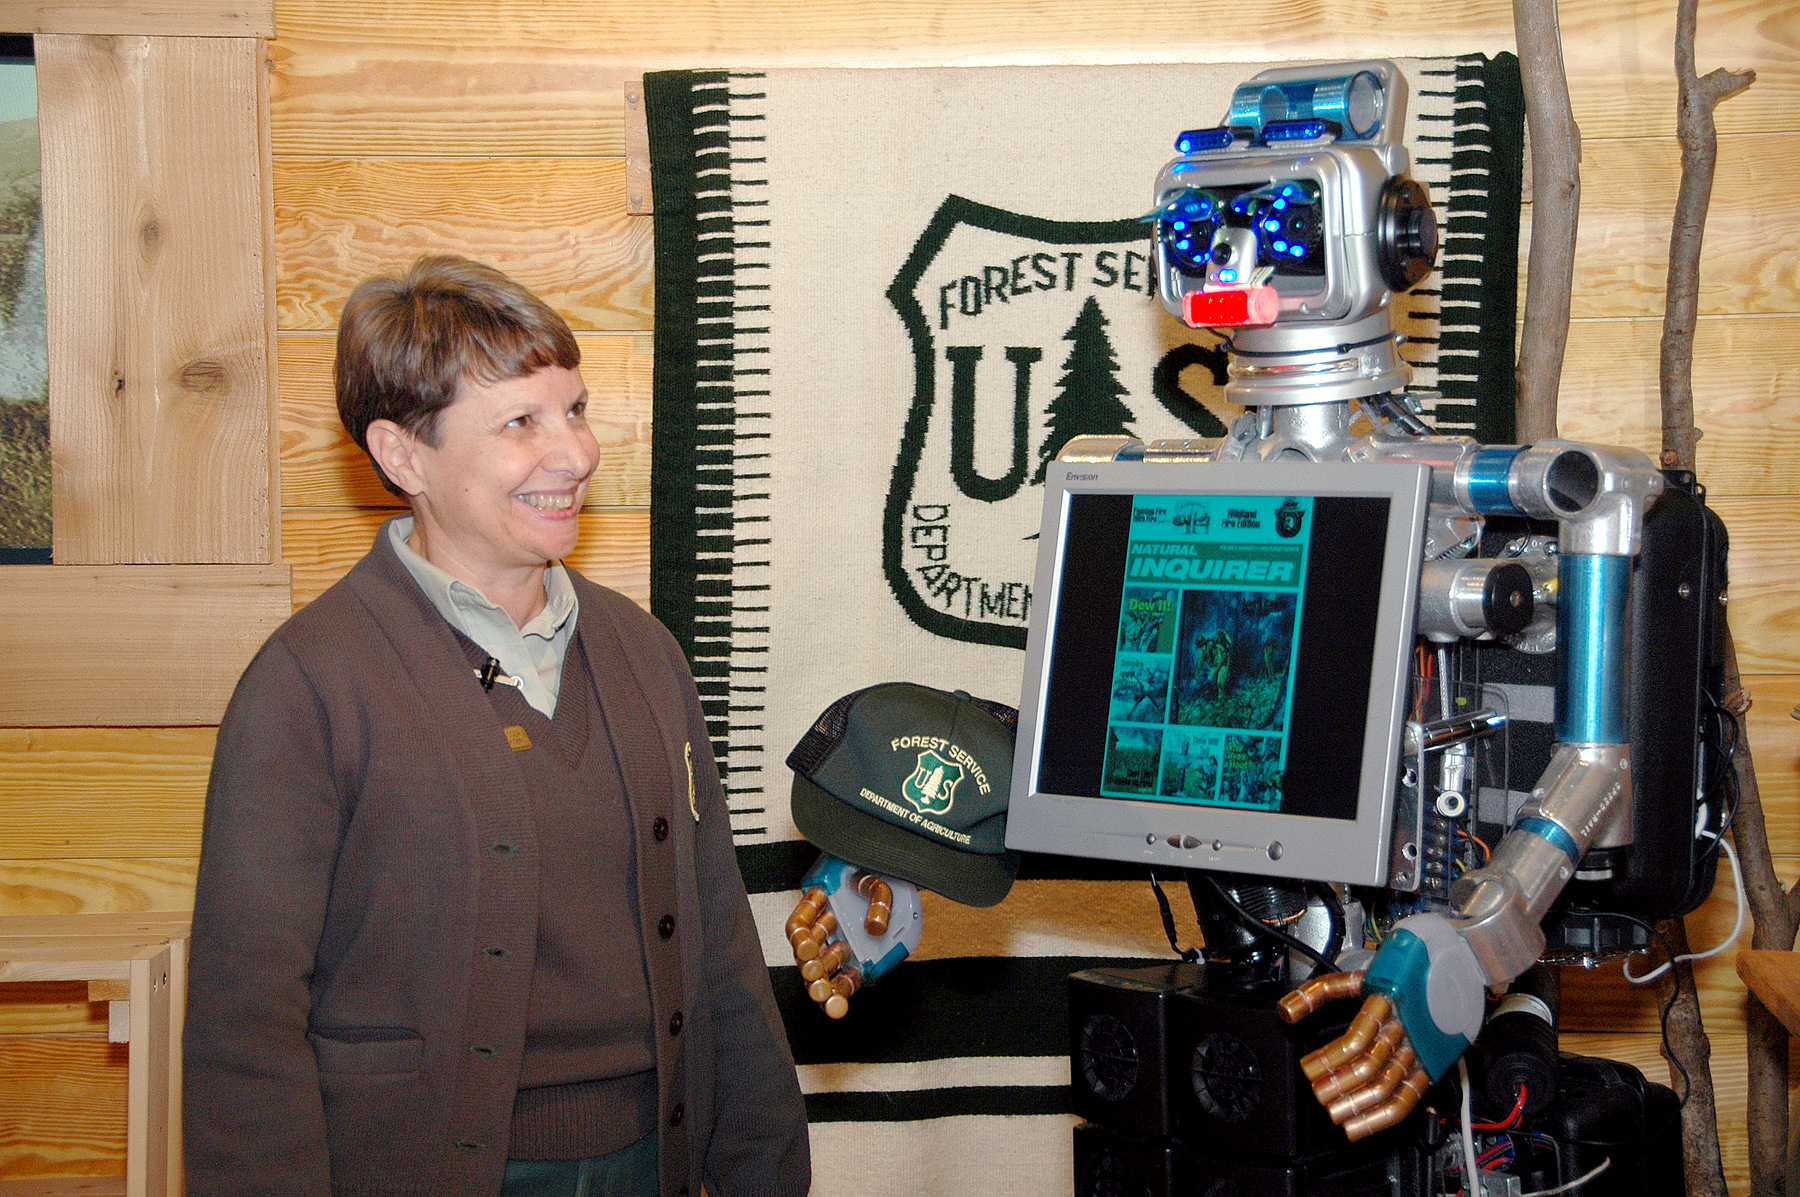 Elizabeth and Terri the Robot at the WO FS visitor Center, December 2008